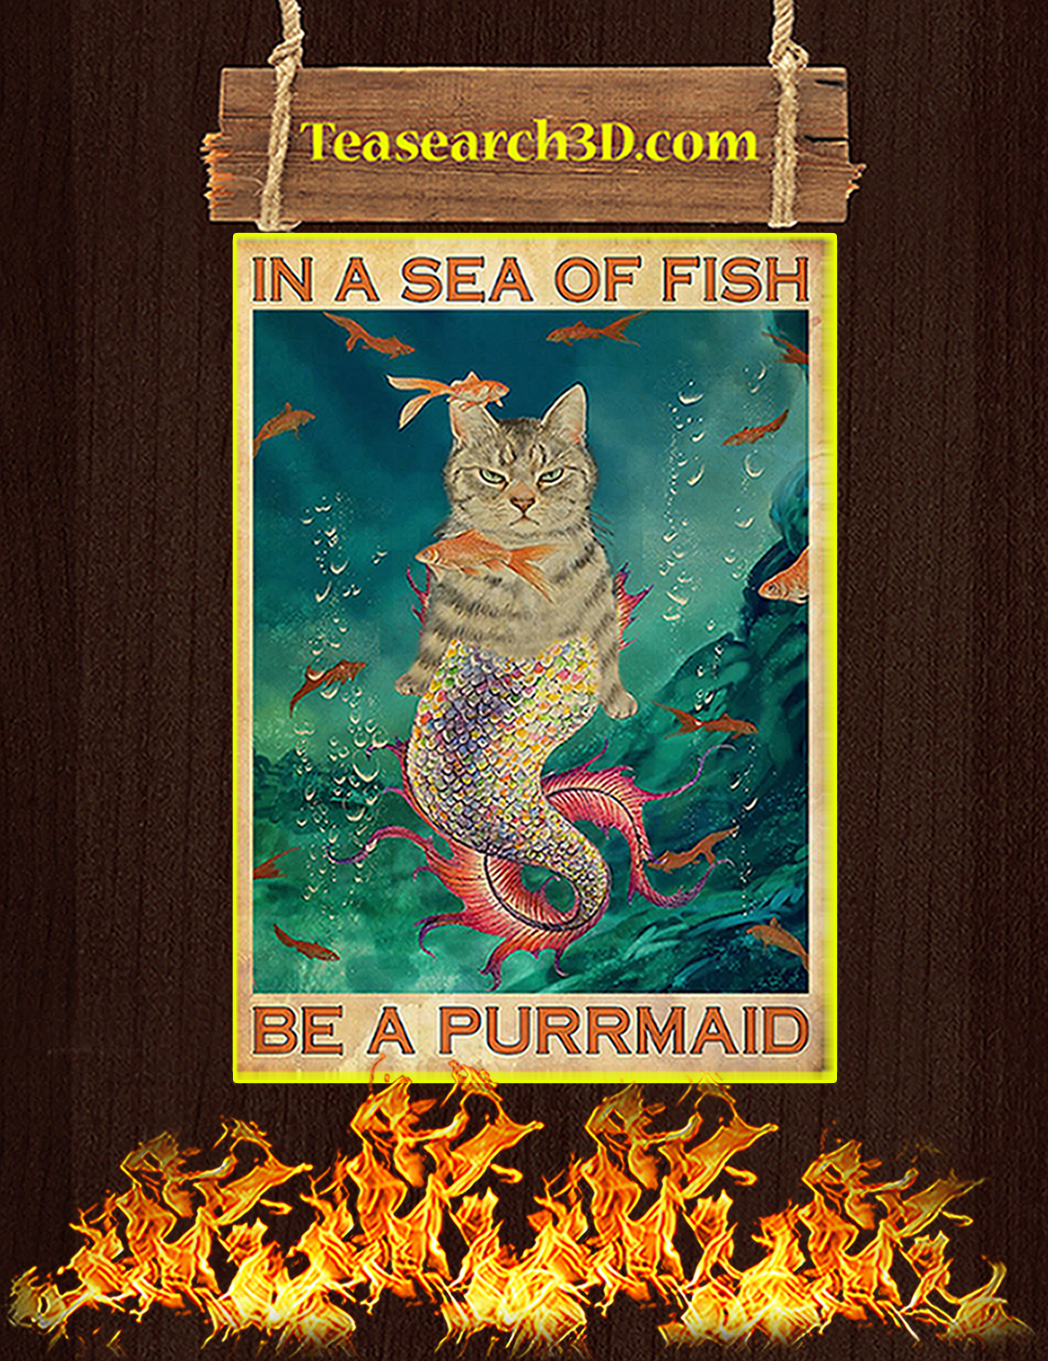 In a sea of fish be a purrmaid poster A1